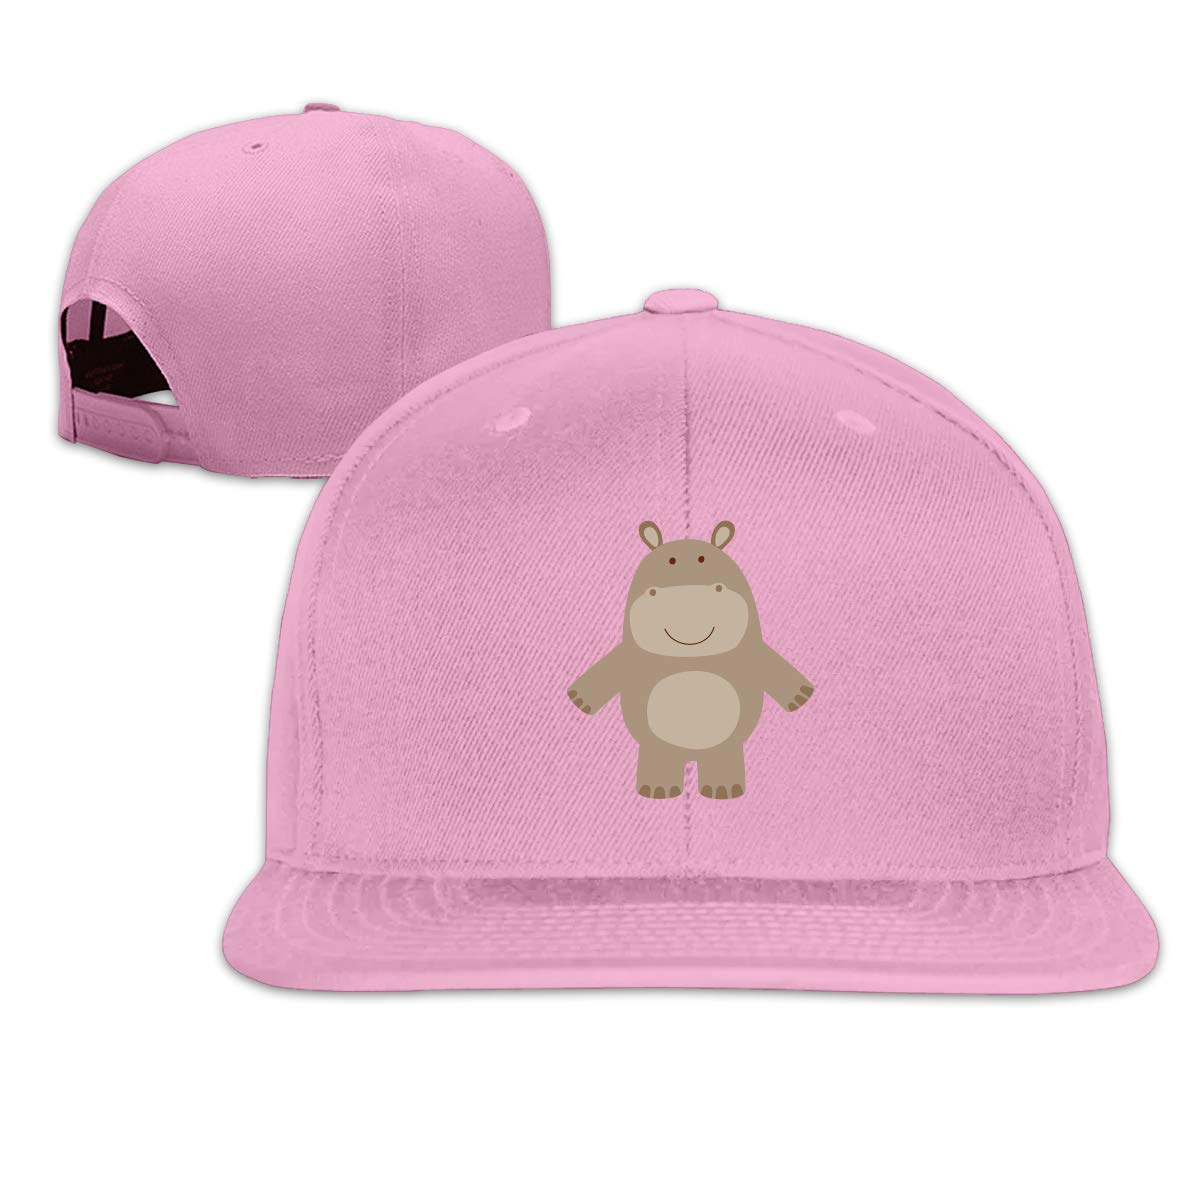 MOCSTONE Unisex Snapback Hat Cute Hippo Adjustable Baseball Cap